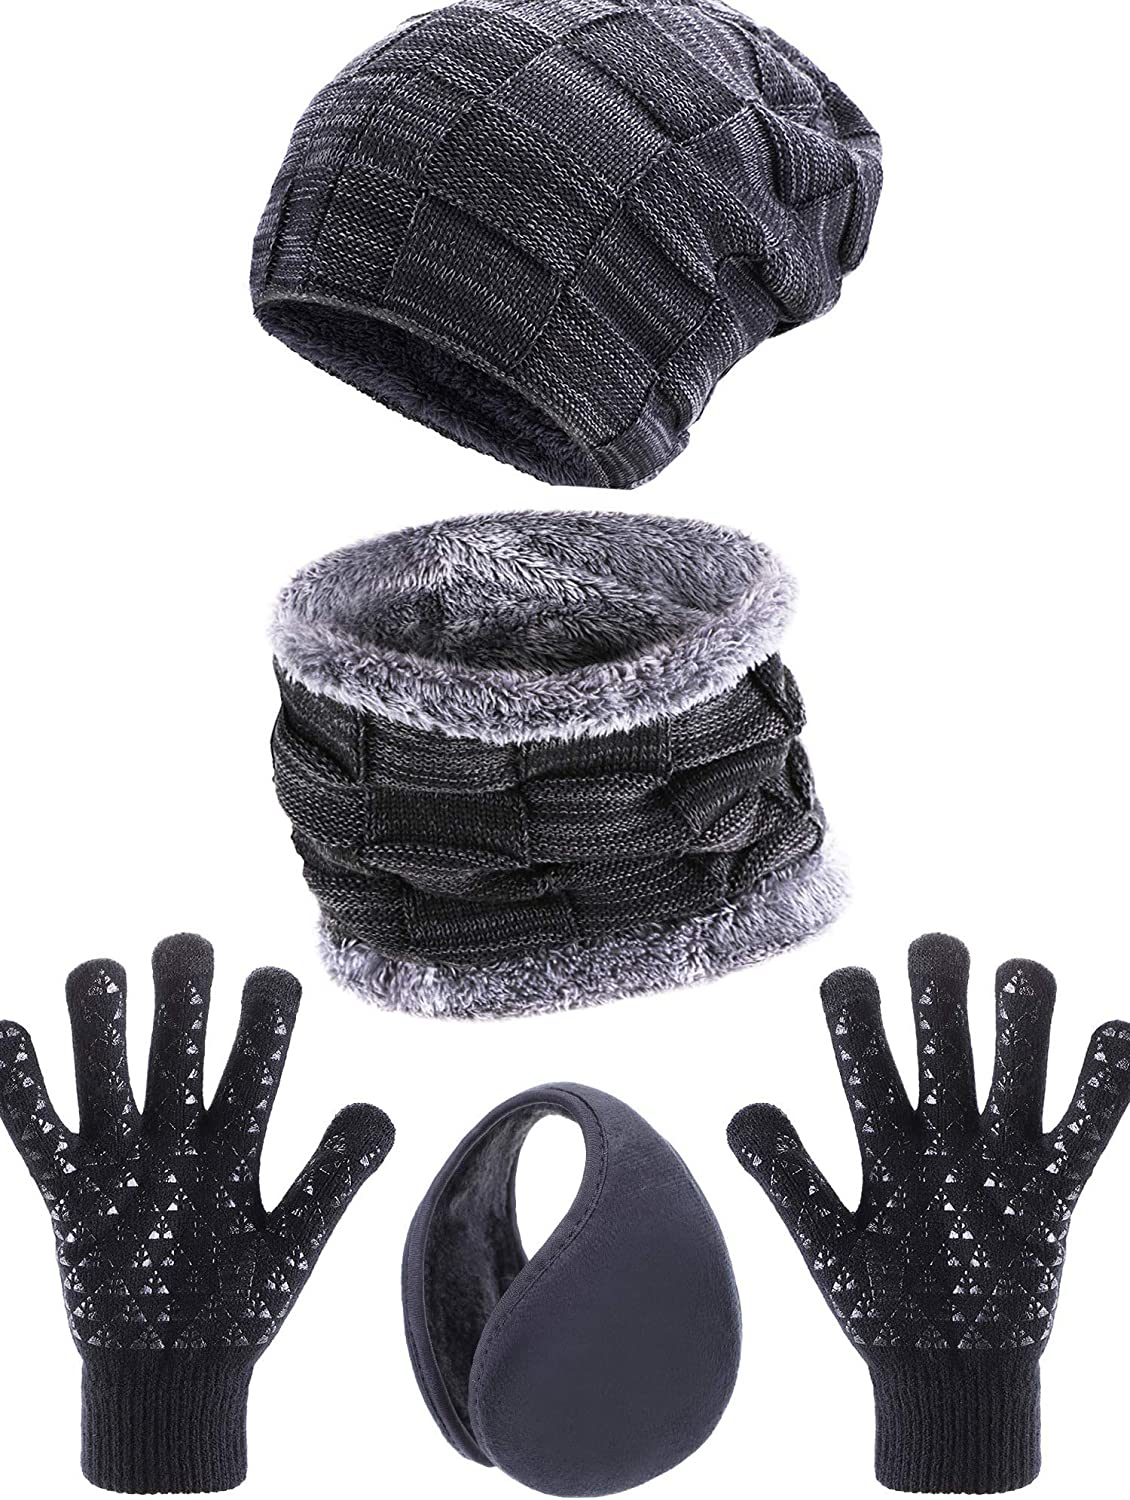 Cash special price Tatuo 4 Pieces Superior Ski Warm Set Cir Includes Beanie Lined Hat Fleece